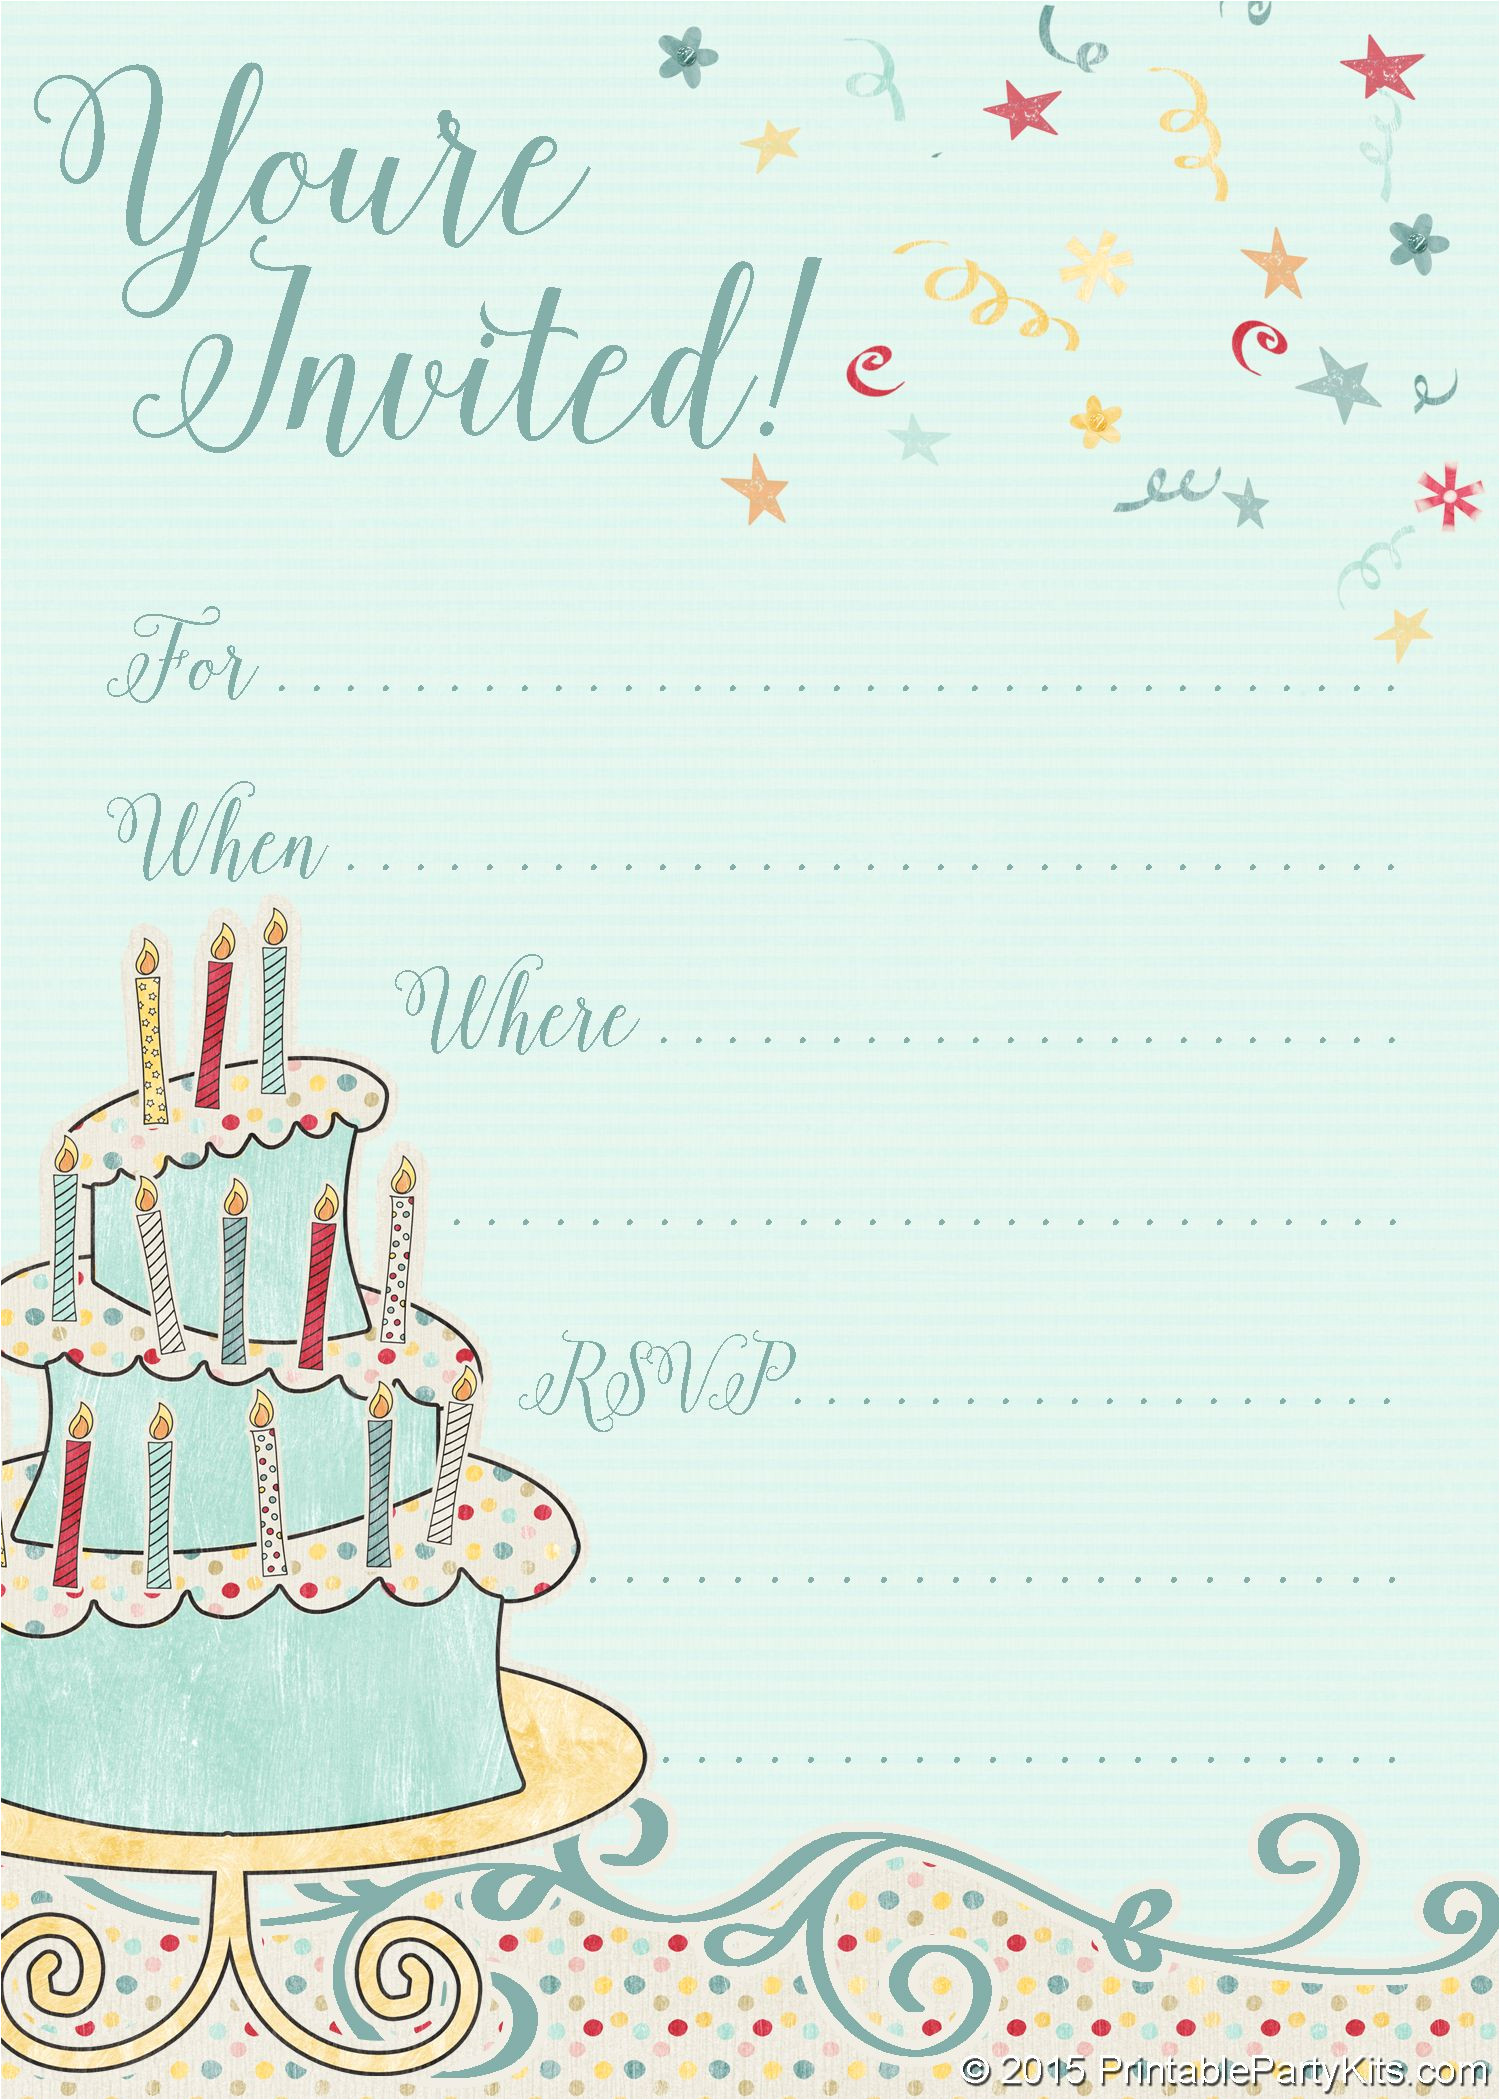 Design Invitation Card Birthday Party Free Printable Whimsical Birthday Party Invitation T with